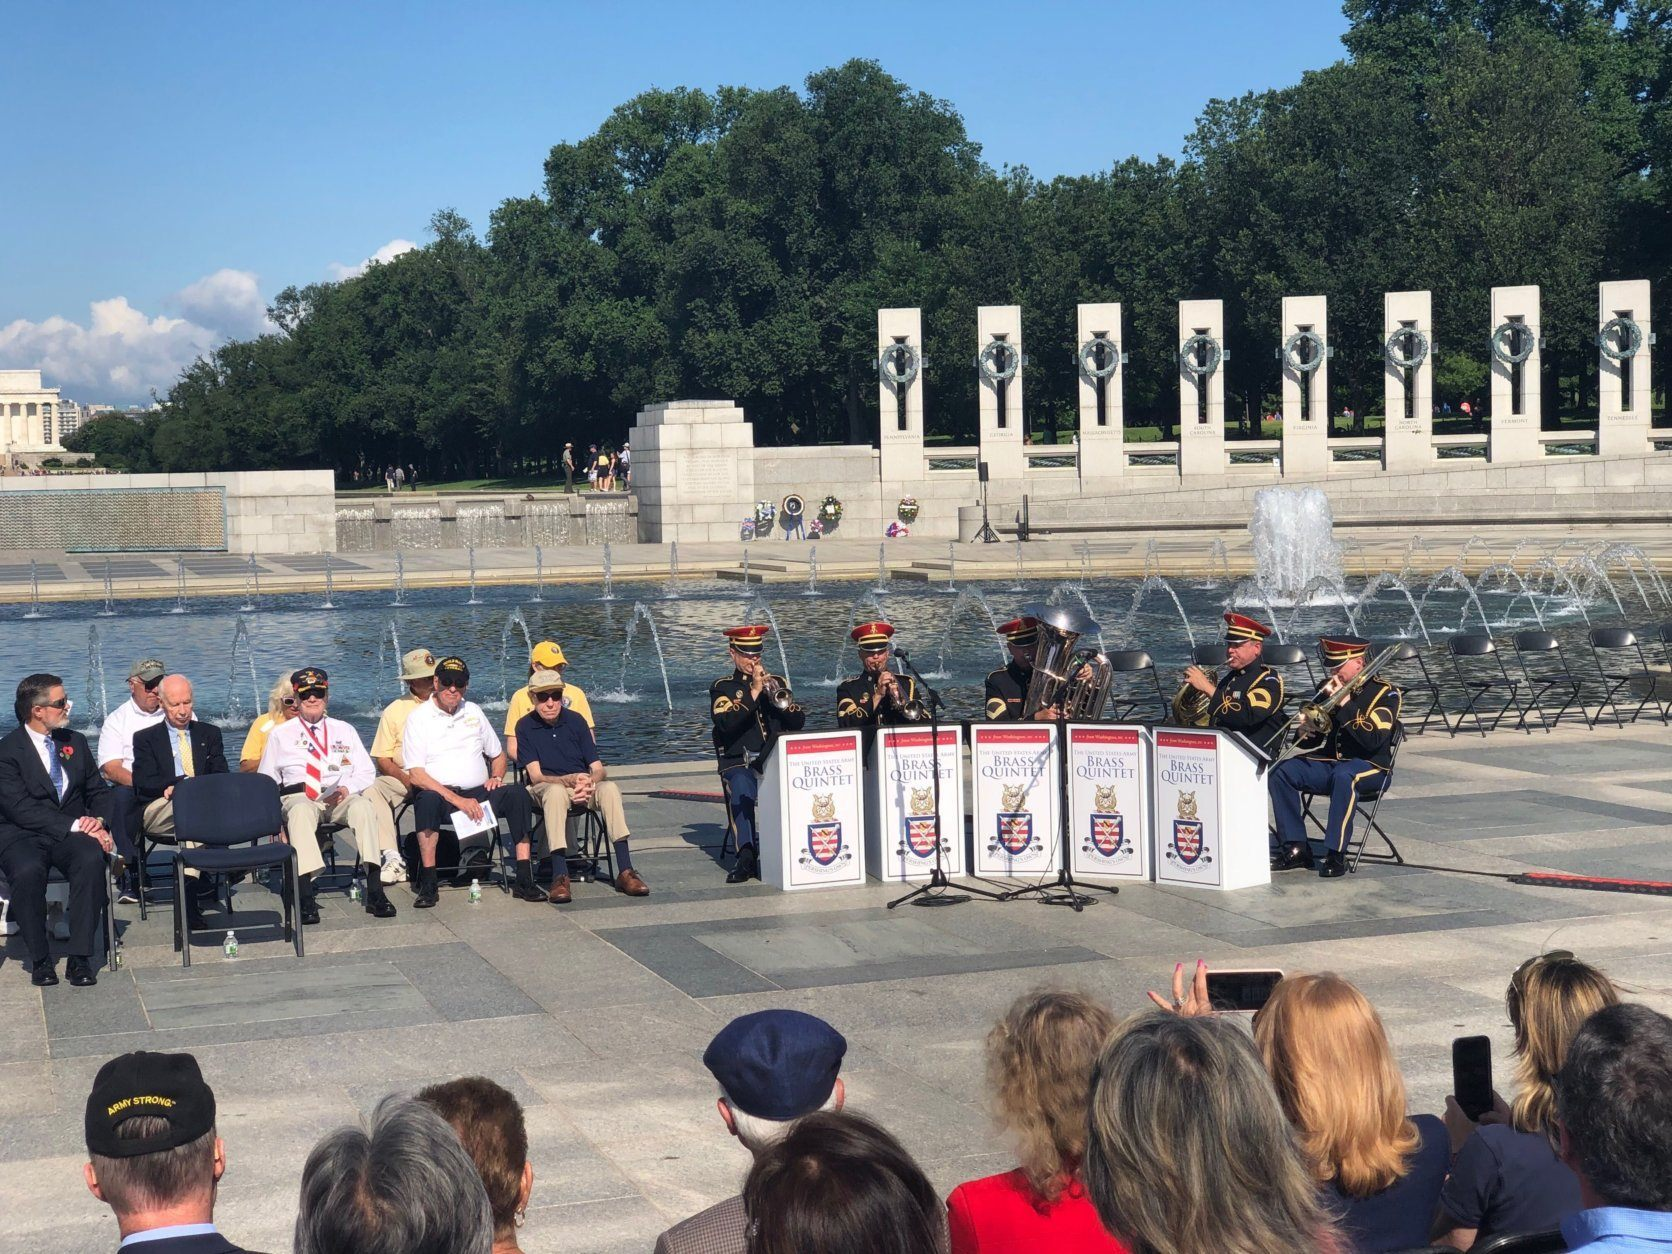 A brass quintet from the U.S. Army band Pershing's Own plays at the memorial on Monday, May 27, 2019. (WTOP/Keara Dowd)